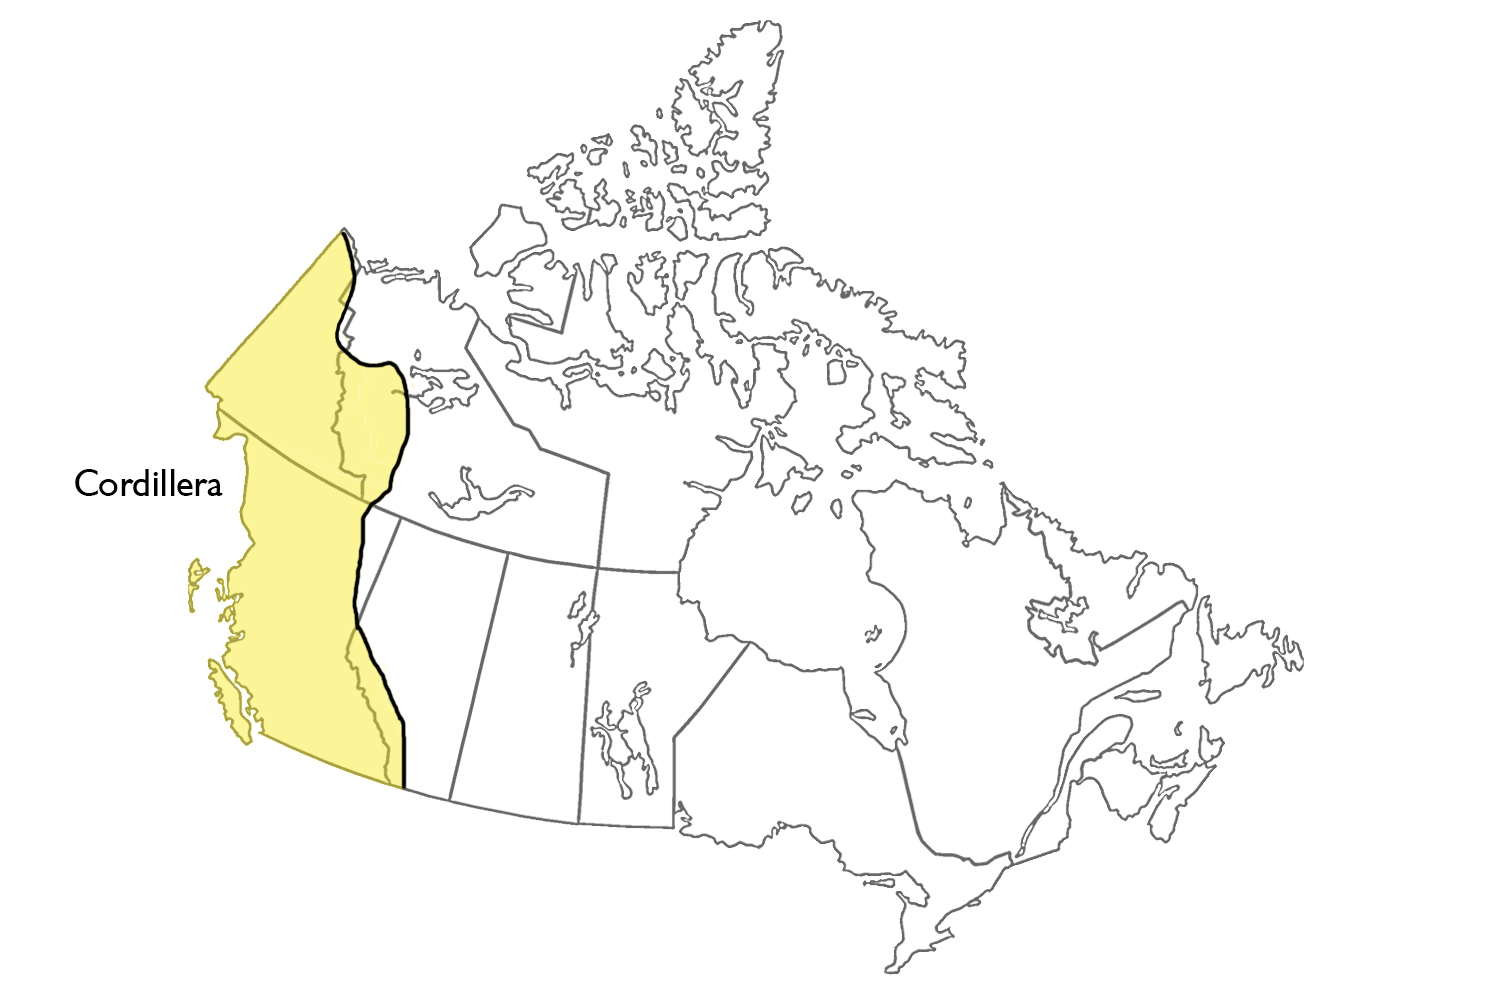 Map Of Cordillera Region Canada Cordillera | The Canadian Encyclopedia